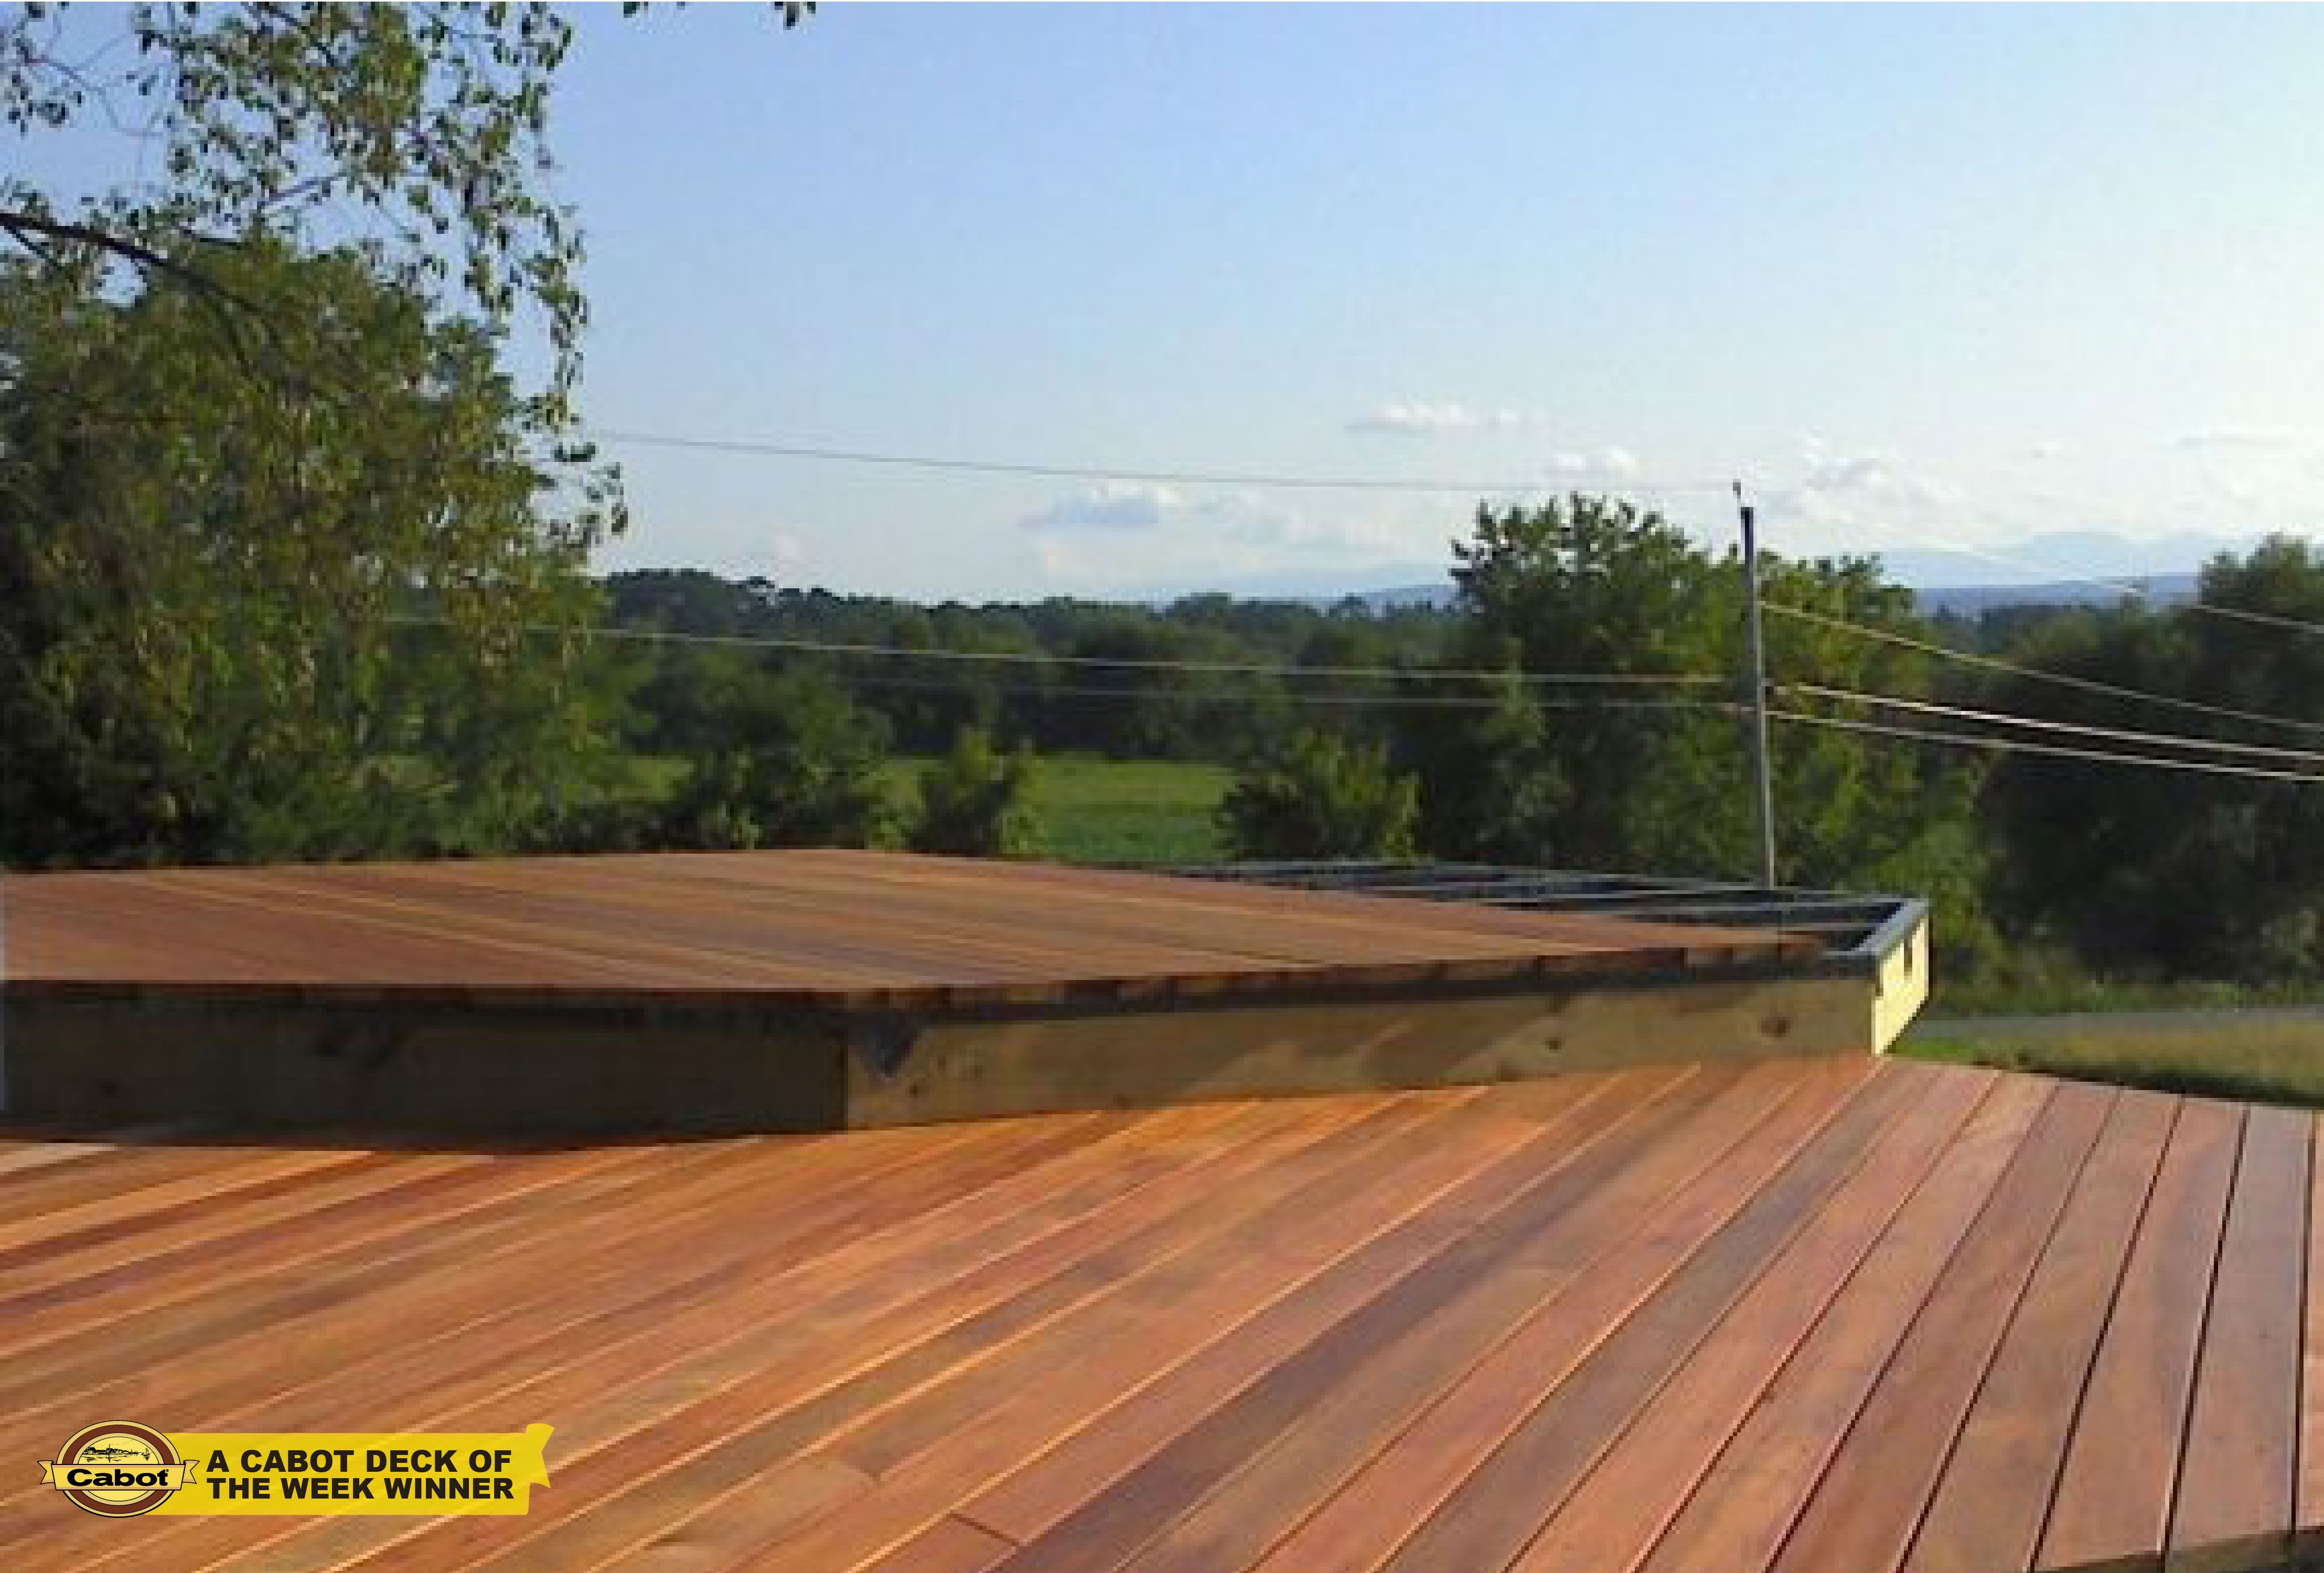 Shares A Mid Project Photo From His Castleton On Hudson, NY Wood Deck,  Protected And Beautified By Cabot Woodcareu0027s Australian Timber Oil